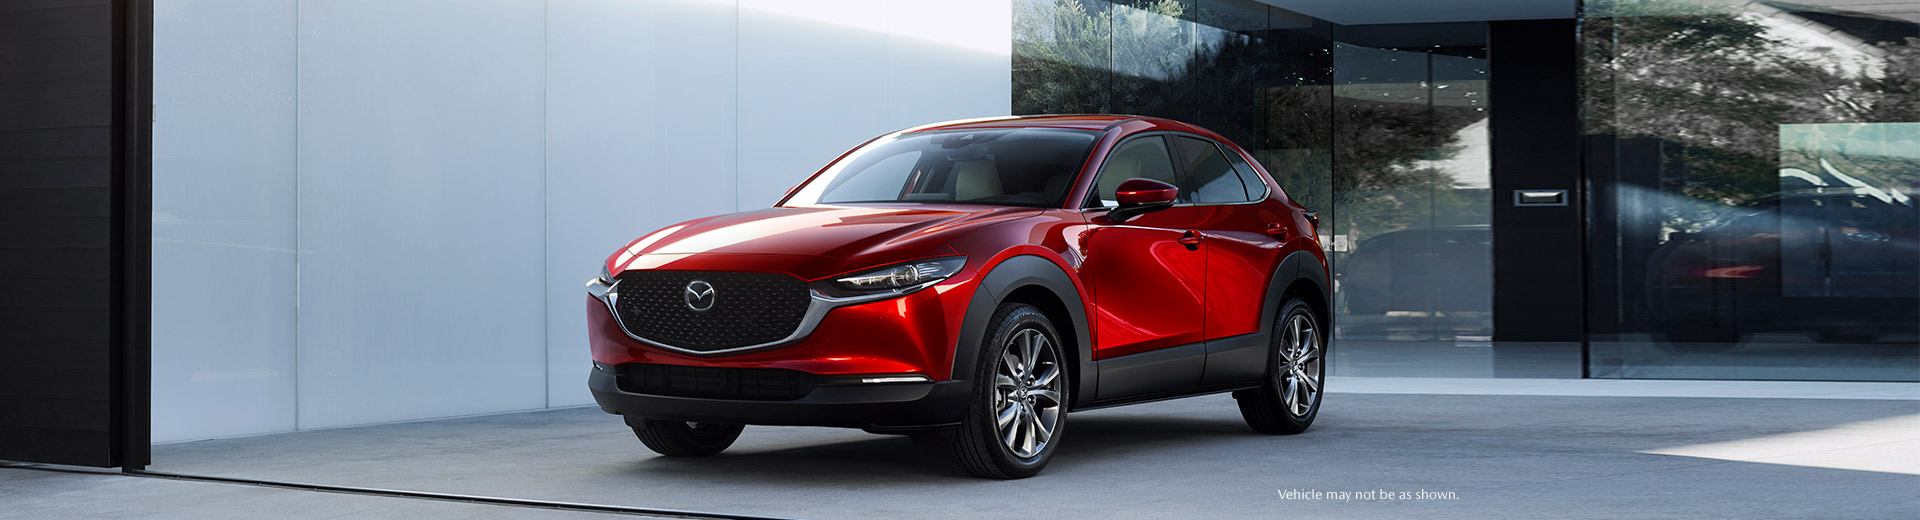 The Mazda CX-30 the perfect balance of form and function.